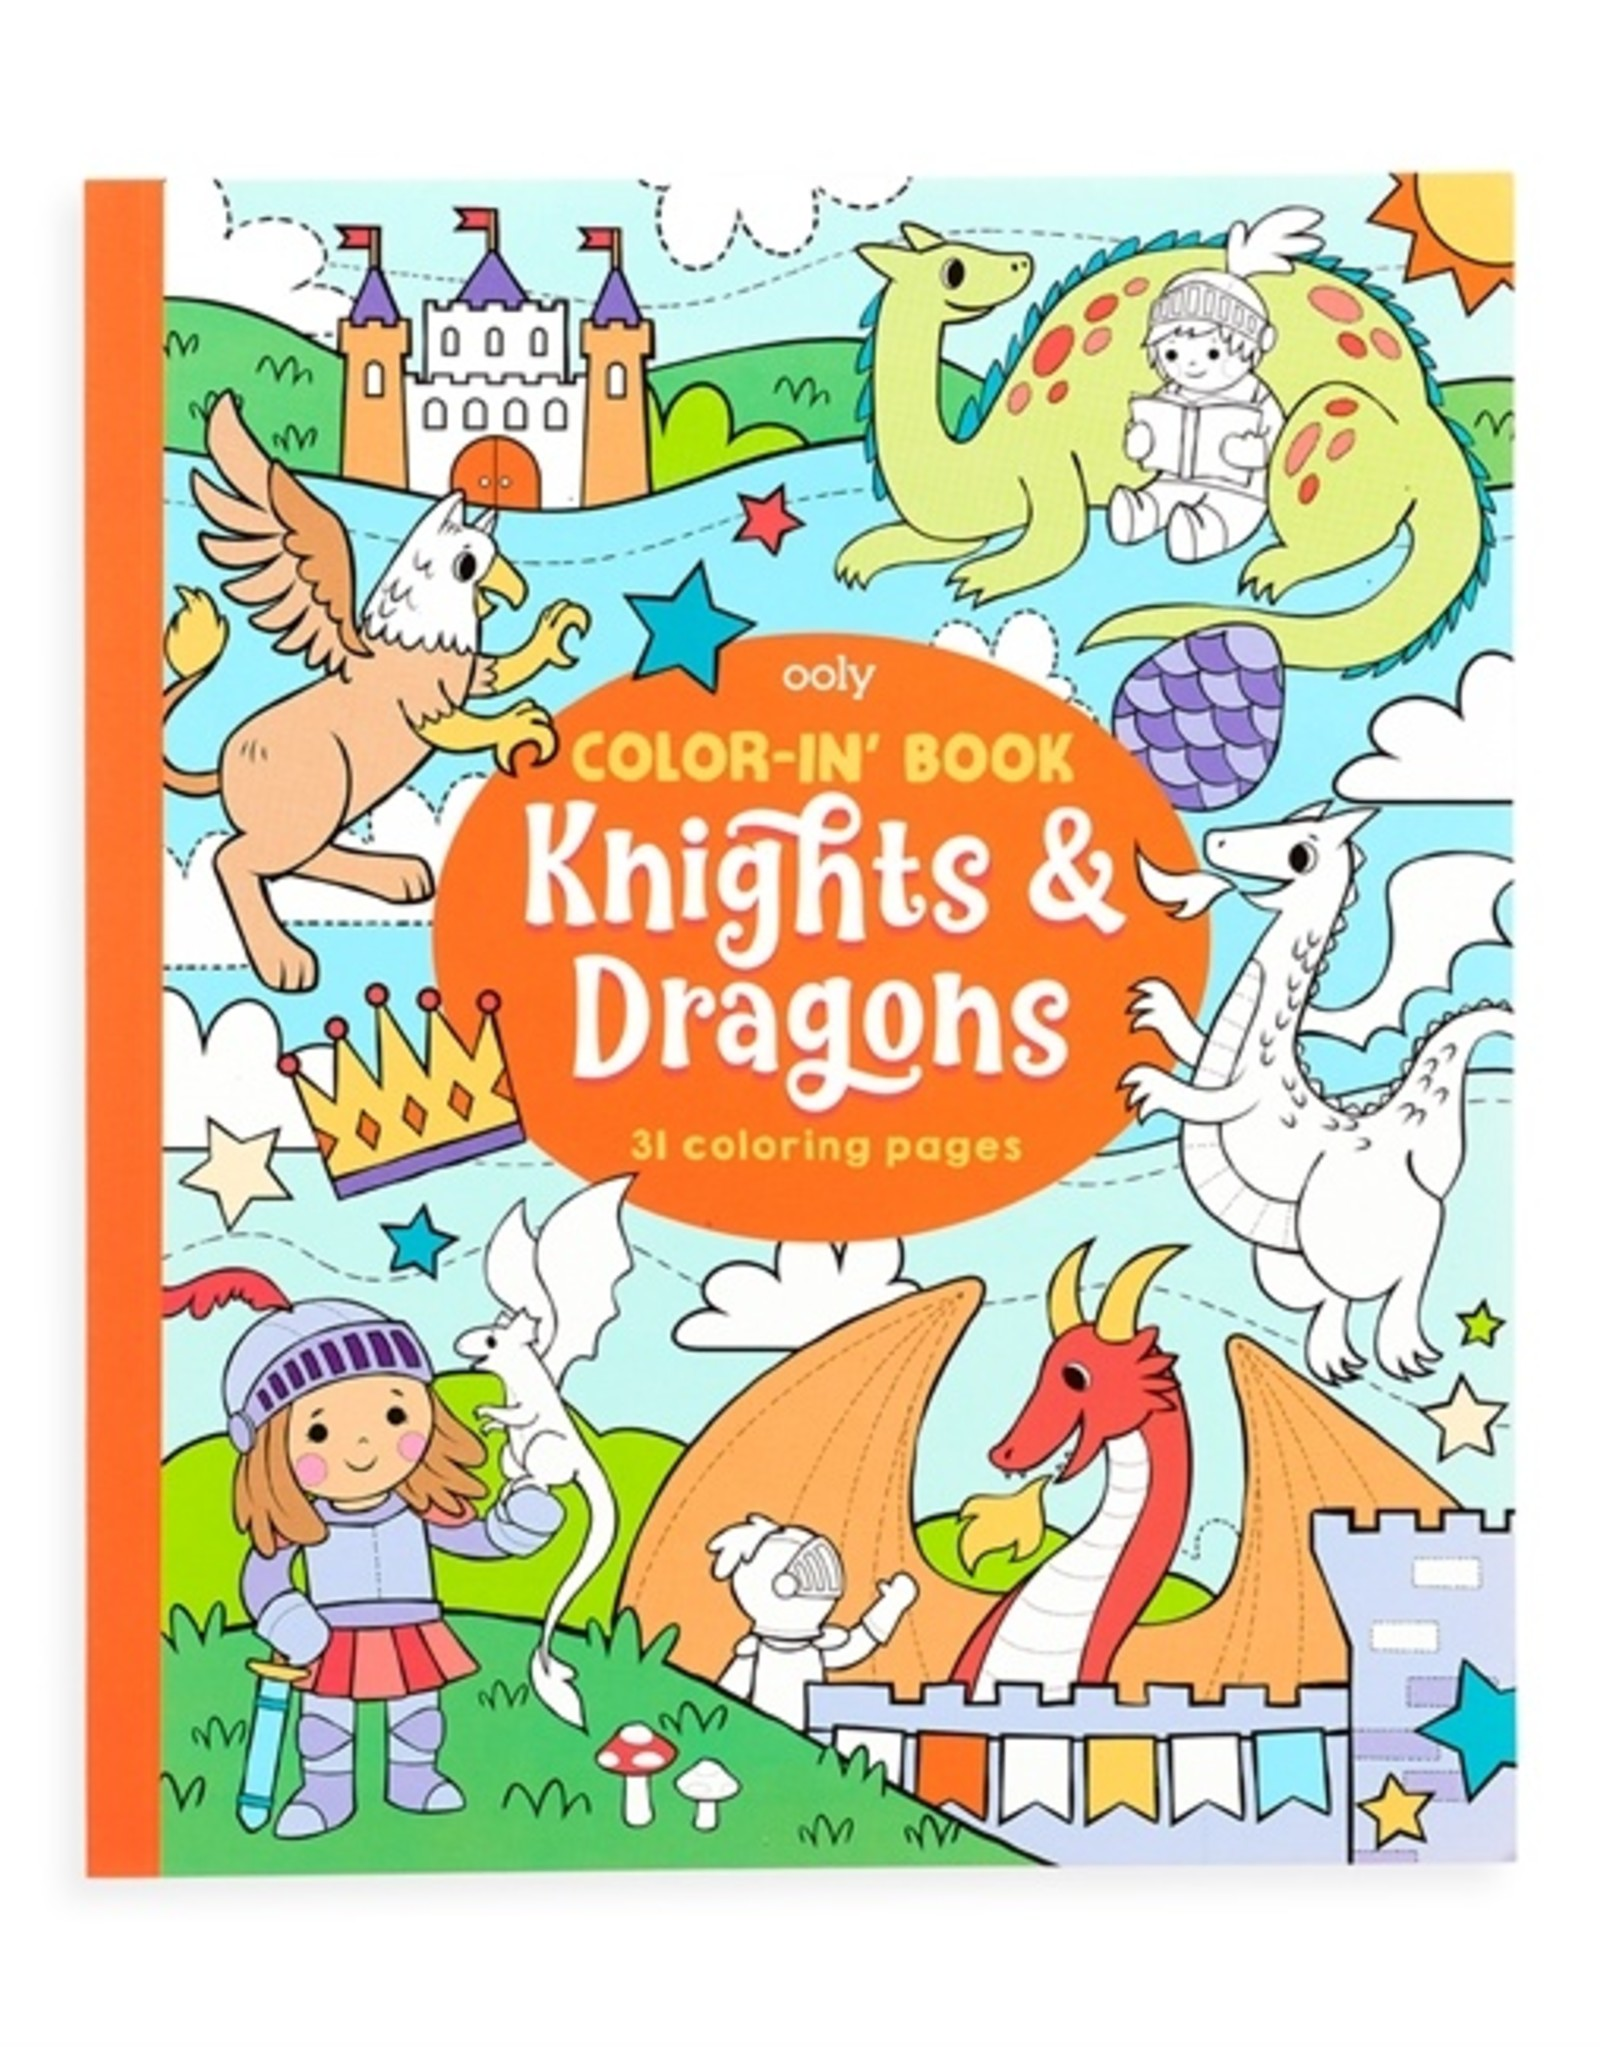 OOLY knight and dragons color-in' book